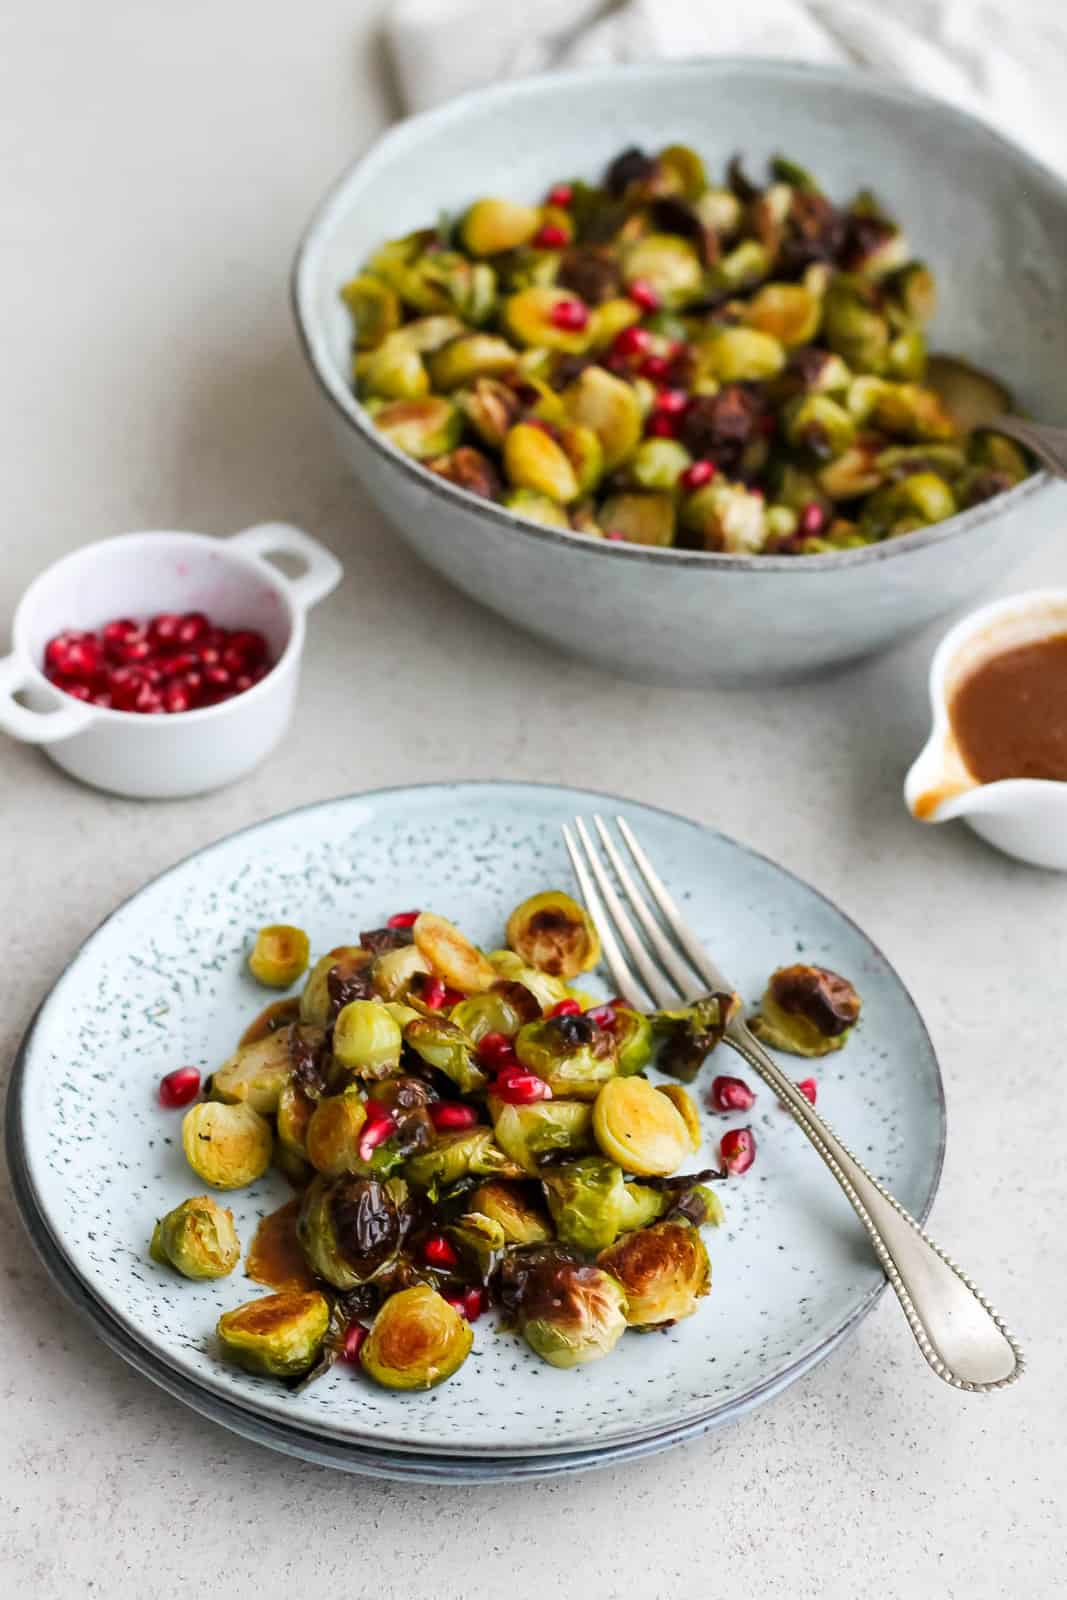 miso roasted brussels sprouts topped with pomegranate seeds on a blue plate